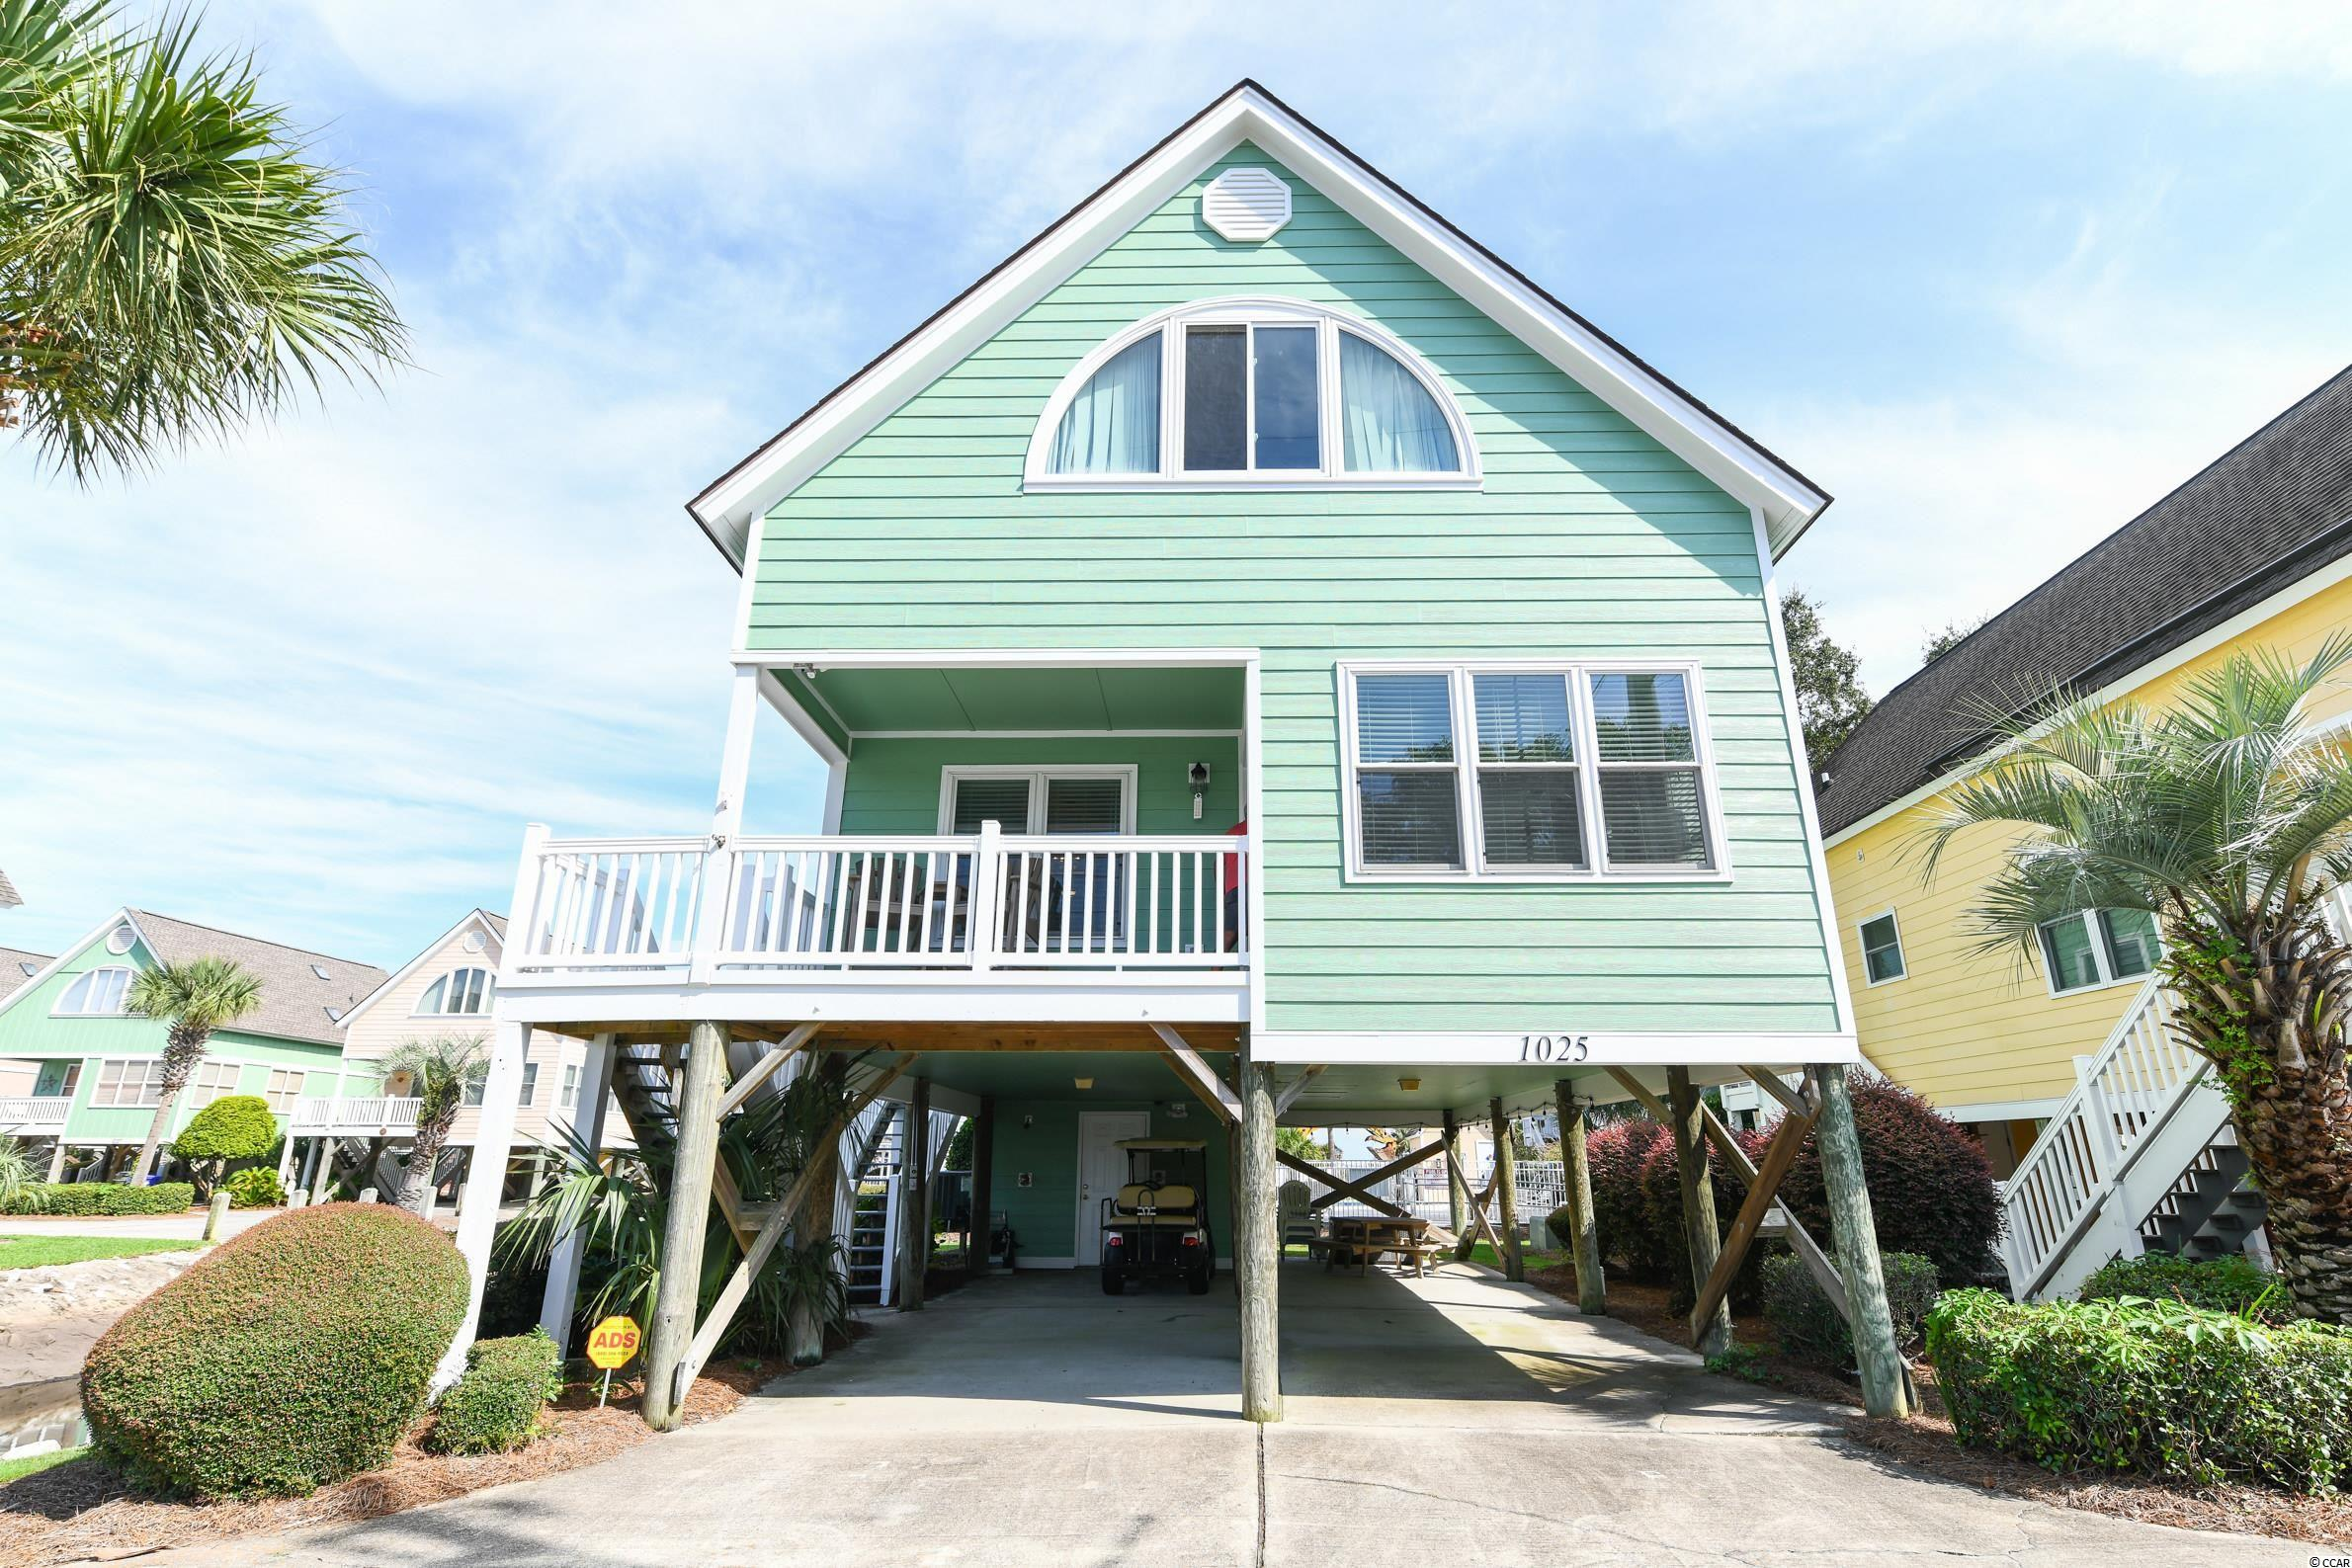 Located a short walking distance from the beach in north surfside is the meticulously maintained and highly desired Sea Bridge community. Enjoy impressive sunsets overlooking Dogwood Lake from the front porch with extra privacy and parking provided by the natural swash flowing to the ocean. Used lightly as a second home since purchased this beautiful 3 bedroom and 2.5 bath raised beach home is ready for you. Perfect as a rental this beach home is sold furnished with many recent improvements including but not limited too; newly painted and installed Hardi plank siding, low maintenance Trex composite decking on all porches/stairs including vinyl railings, remodeled kitchen including new sink,  countertops & stainless steel appliances, new HVAC, new washer & dryer,  and LVP flooring downstairs just to name a few. The private community pool is located just steps behind the property and partial ocean views can be had from the upstairs second bedroom while overlooking the pool. Call me or your realtor to schedule a private showing before its to late.